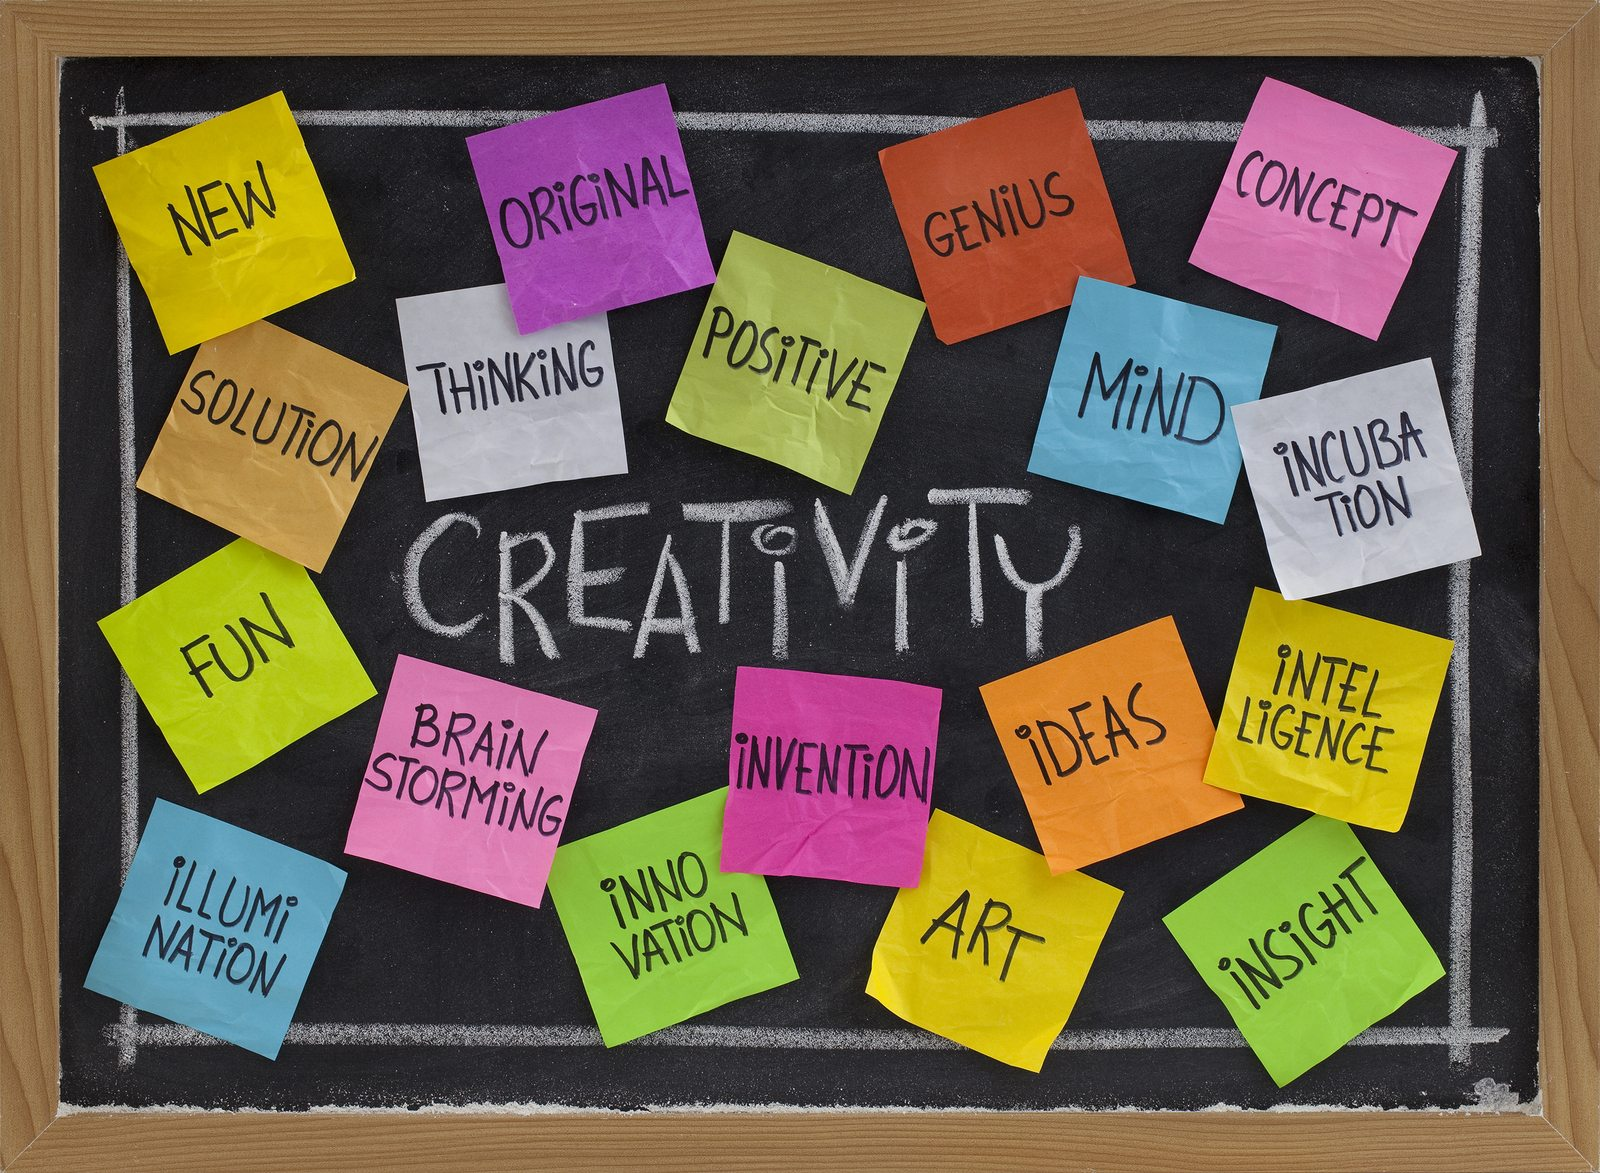 scholarly legal writing as cultivation of creative thinking and imagination Facione, pa, critical thinking: what it is and why it counts  2011 update page 4 now, consider the example of the team of people trying to solve a problem.